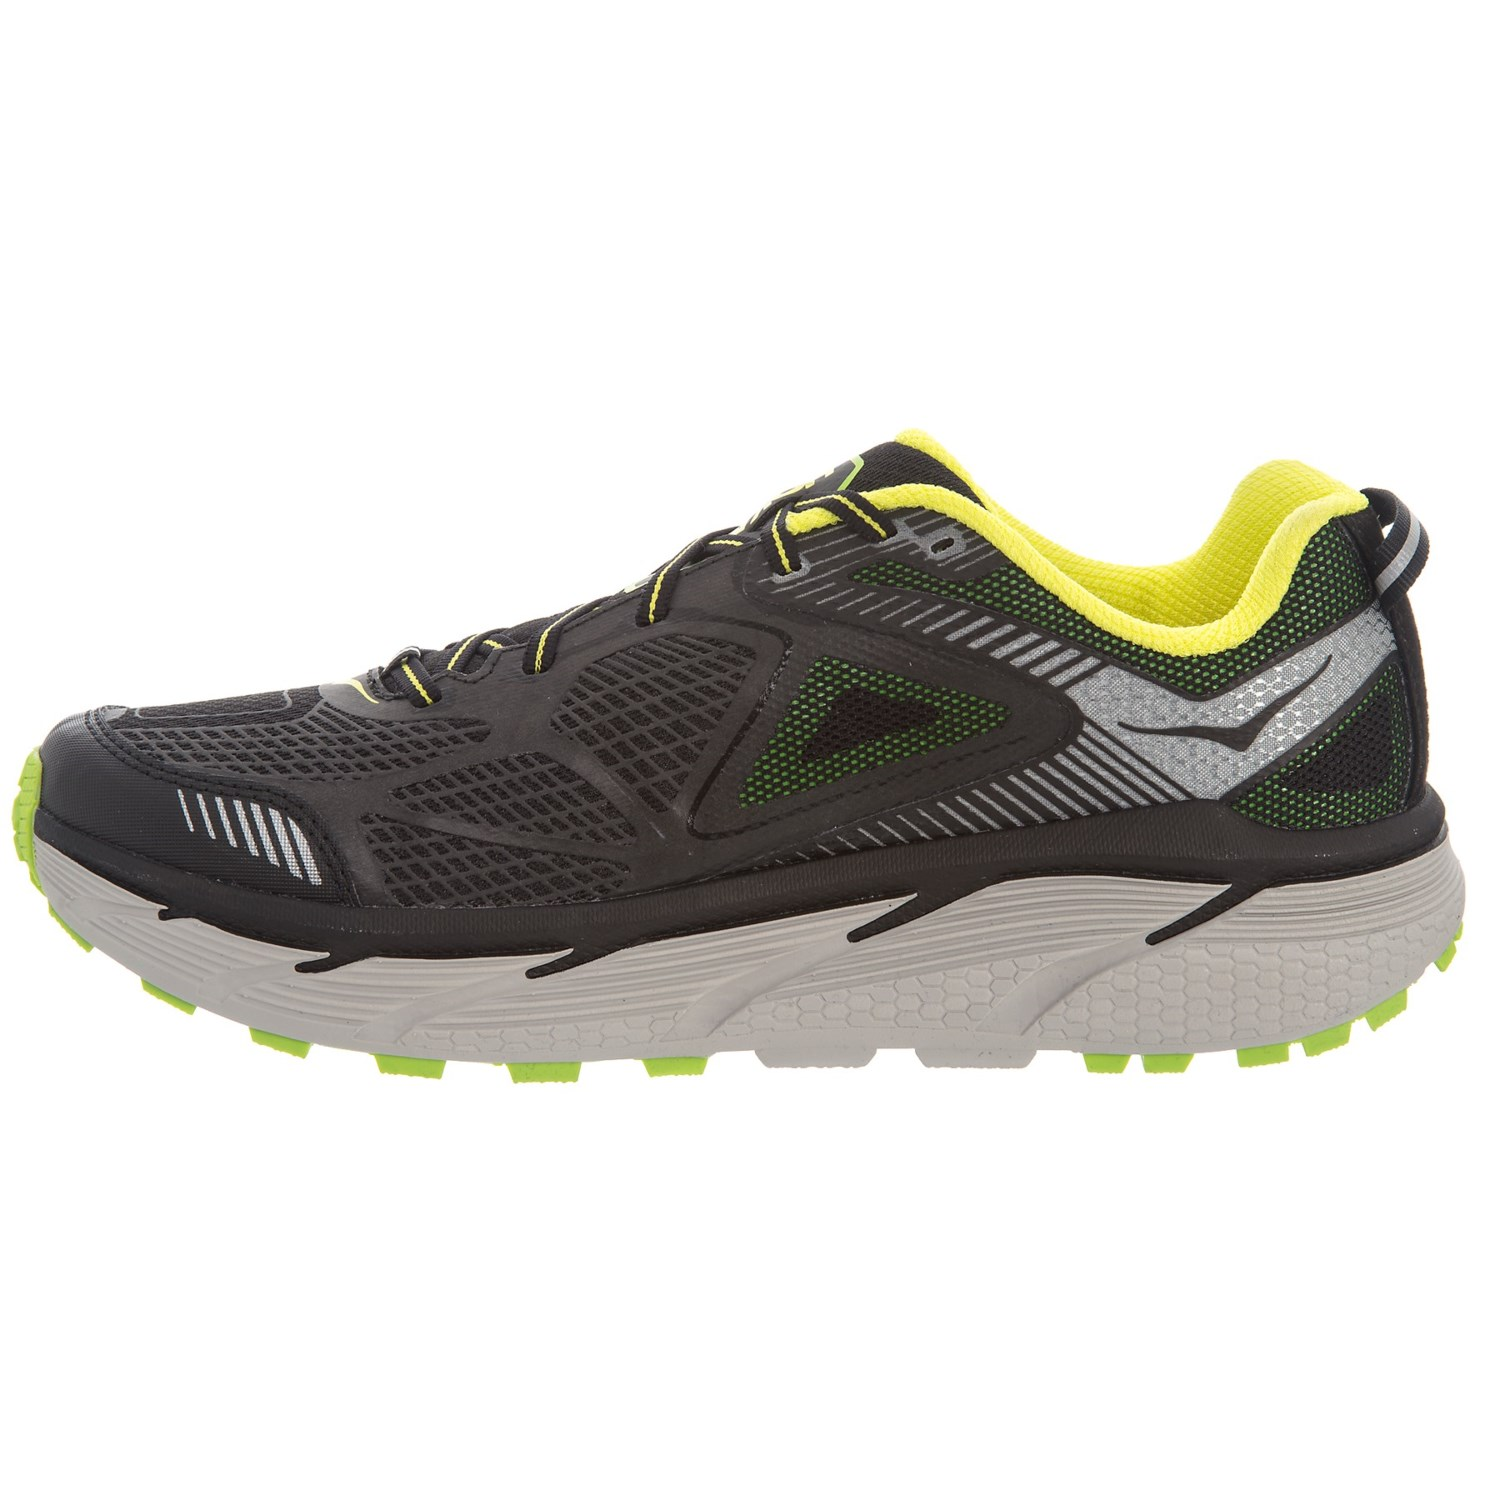 Hoka One One Challenger ATR 3 Trail Running Shoes (For Men) - Save 25% af634cc2853